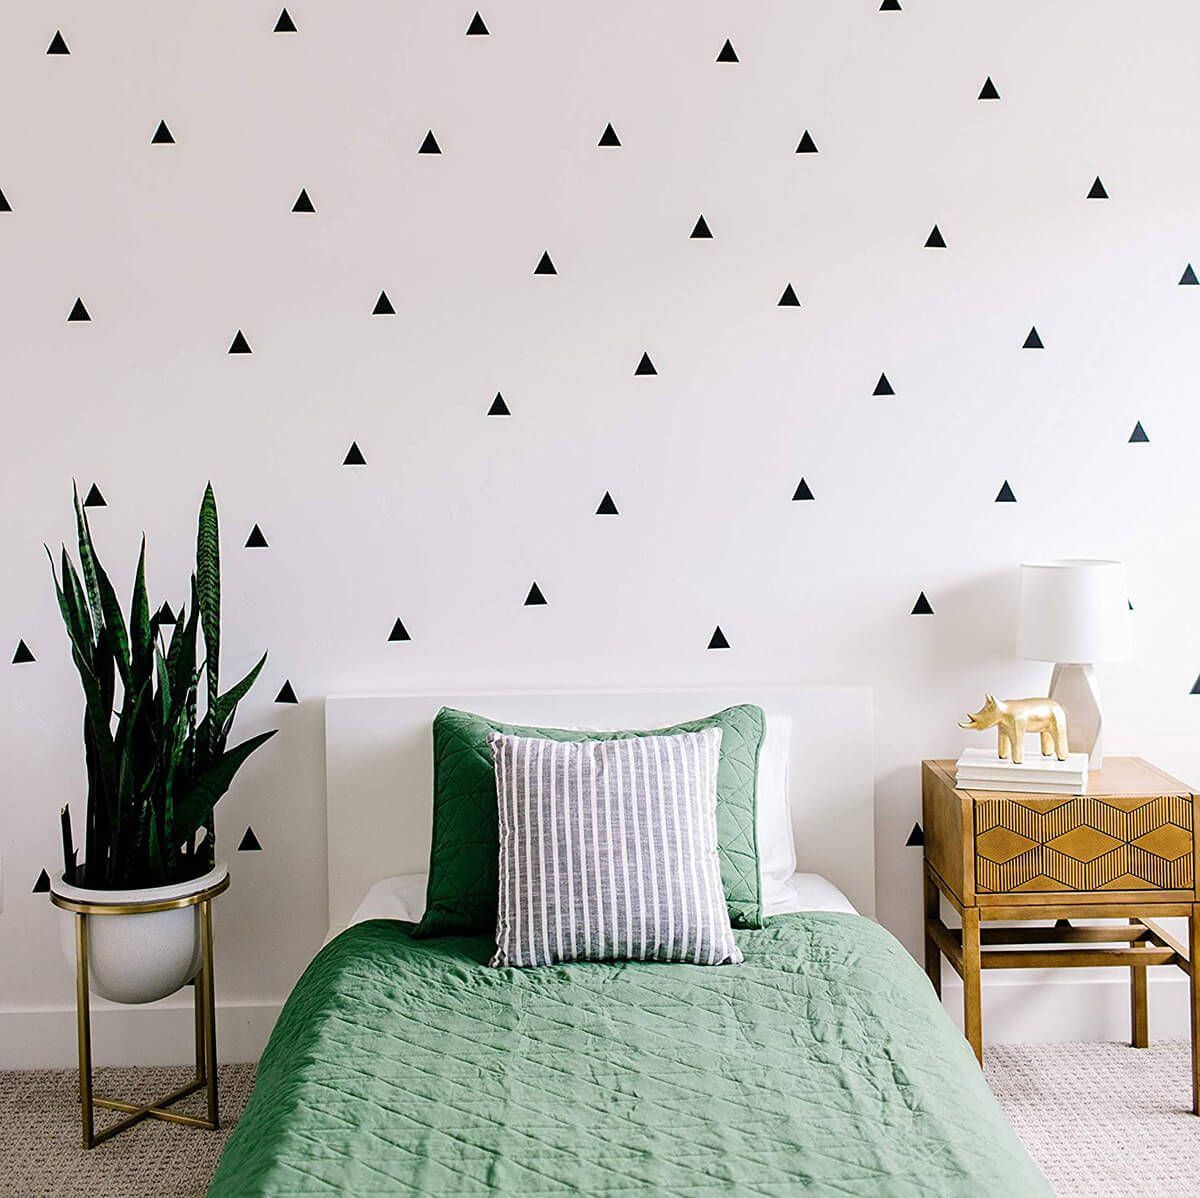 22 Bedroom Accent Wall Design Ideas